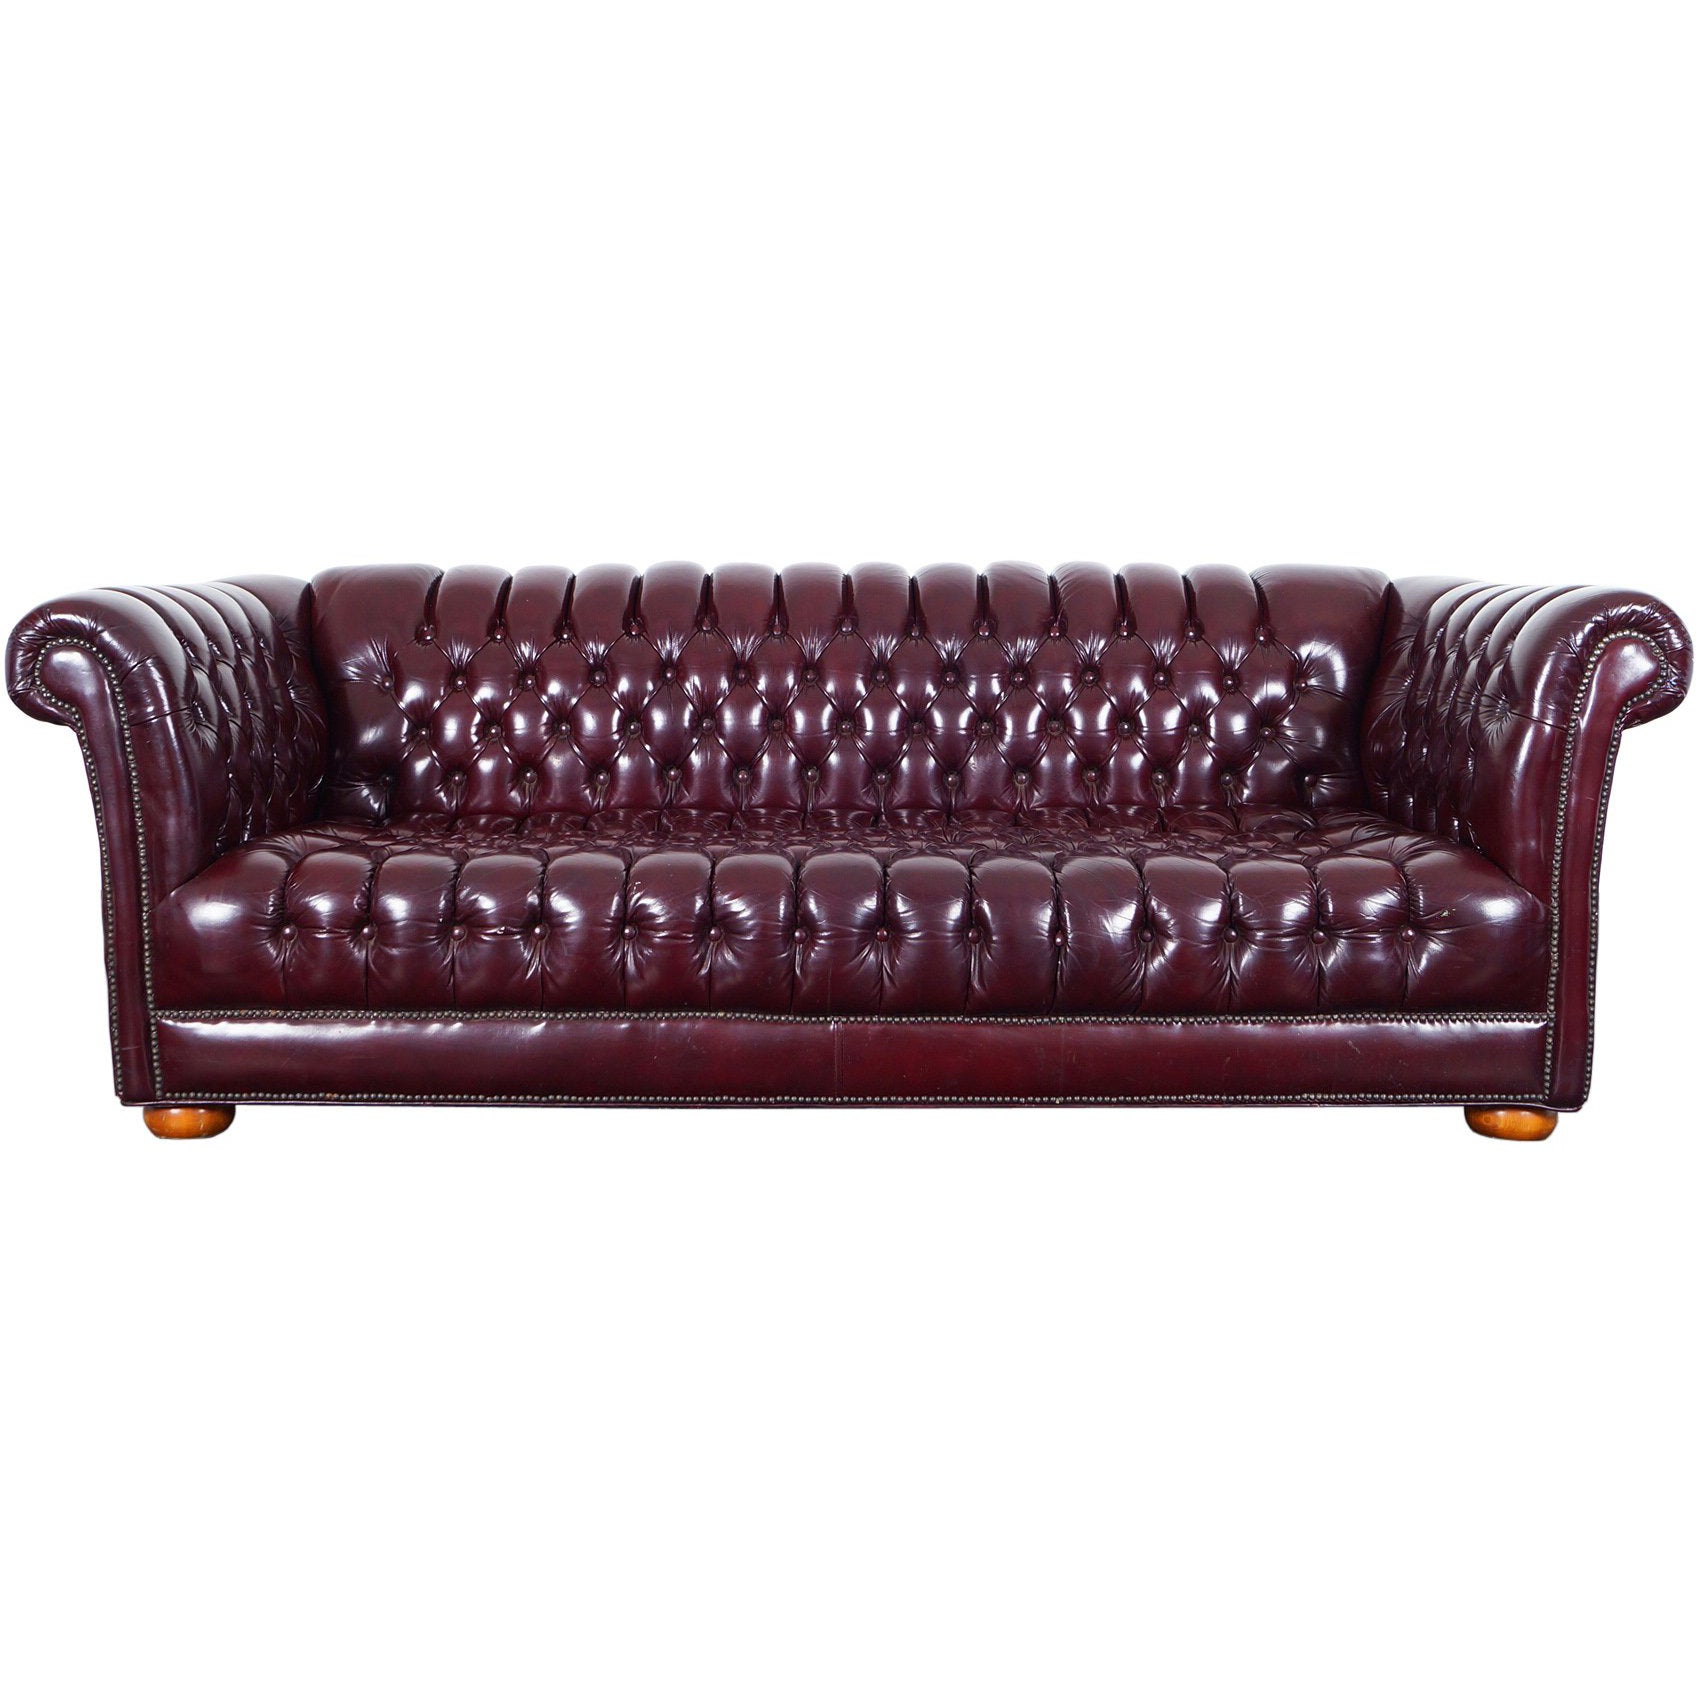 Superb Vintage Burgundy Leather Chesterfield Sofa Squirreltailoven Fun Painted Chair Ideas Images Squirreltailovenorg